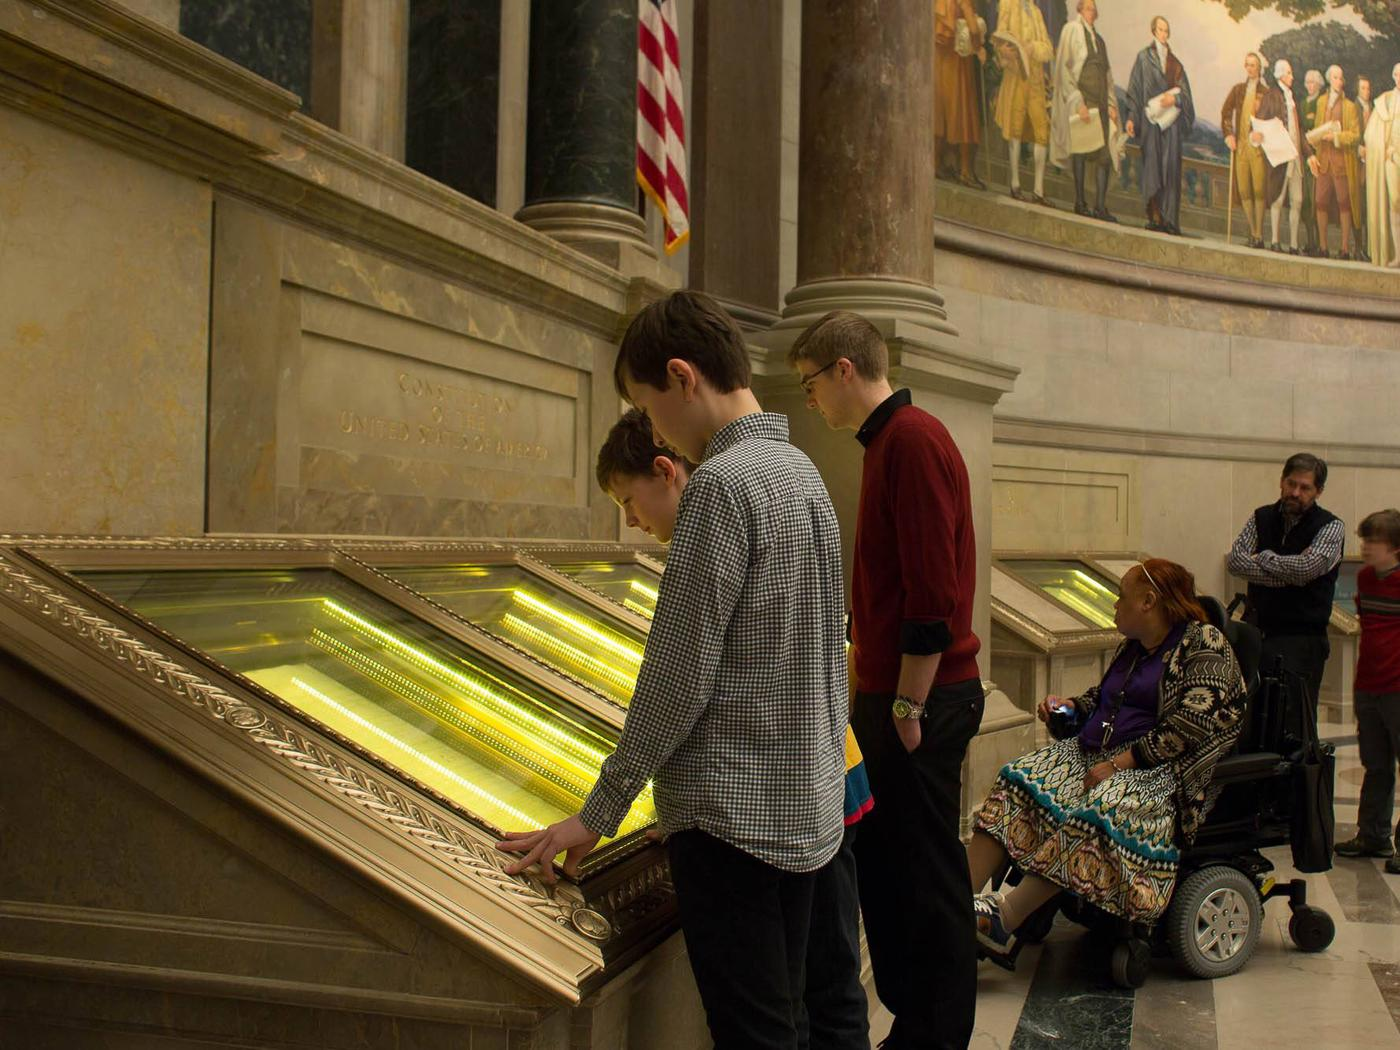 Visitors viewing the US Constitution in The Rotunda for the Charters of Freedom